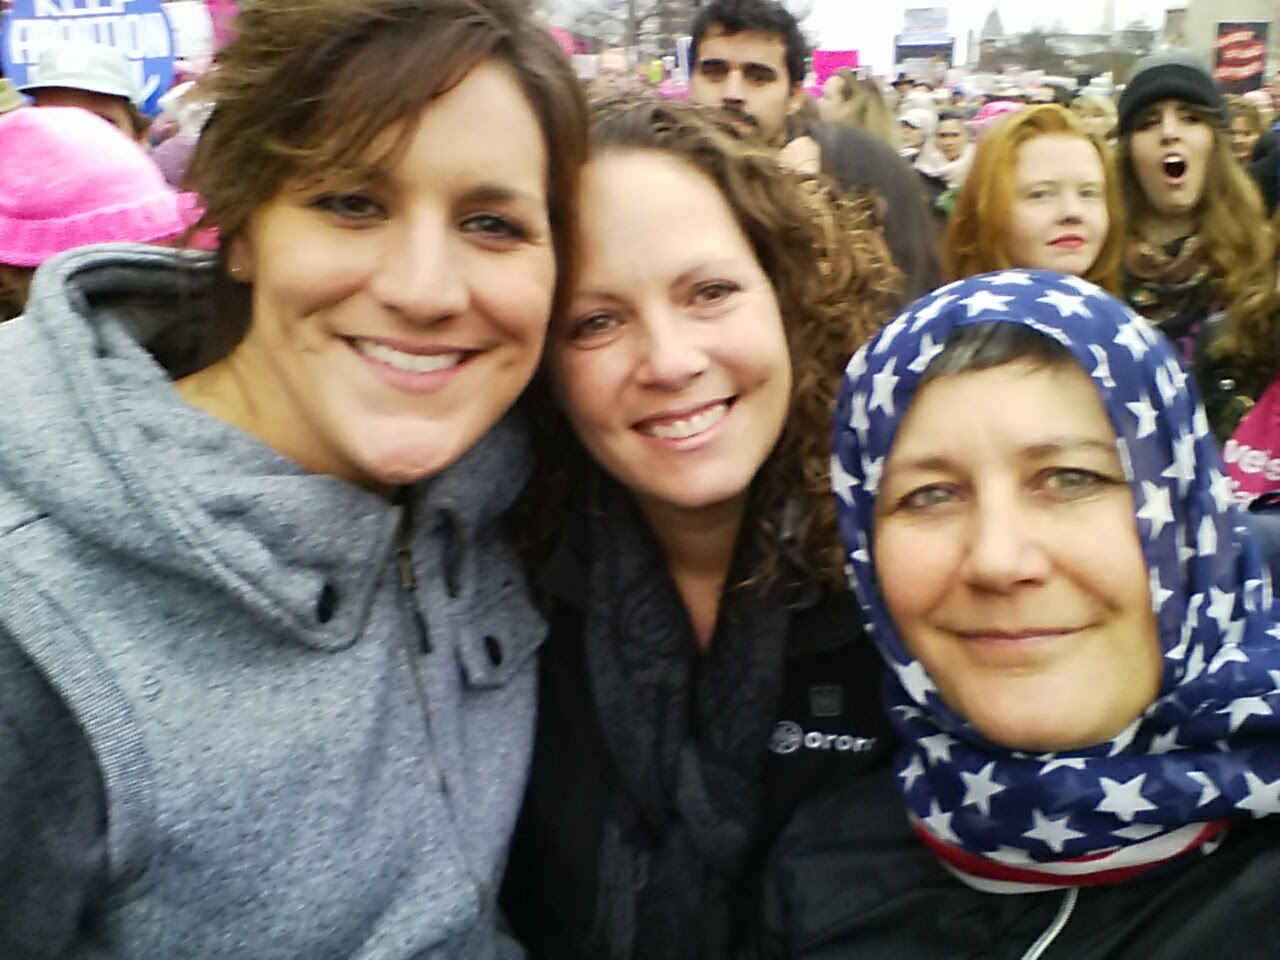 This Stars and Stripes scarf was placed on my head like a hijab by an American Muslim when I was at the Women's March in 2017, so that we could show our solidarity for one another.